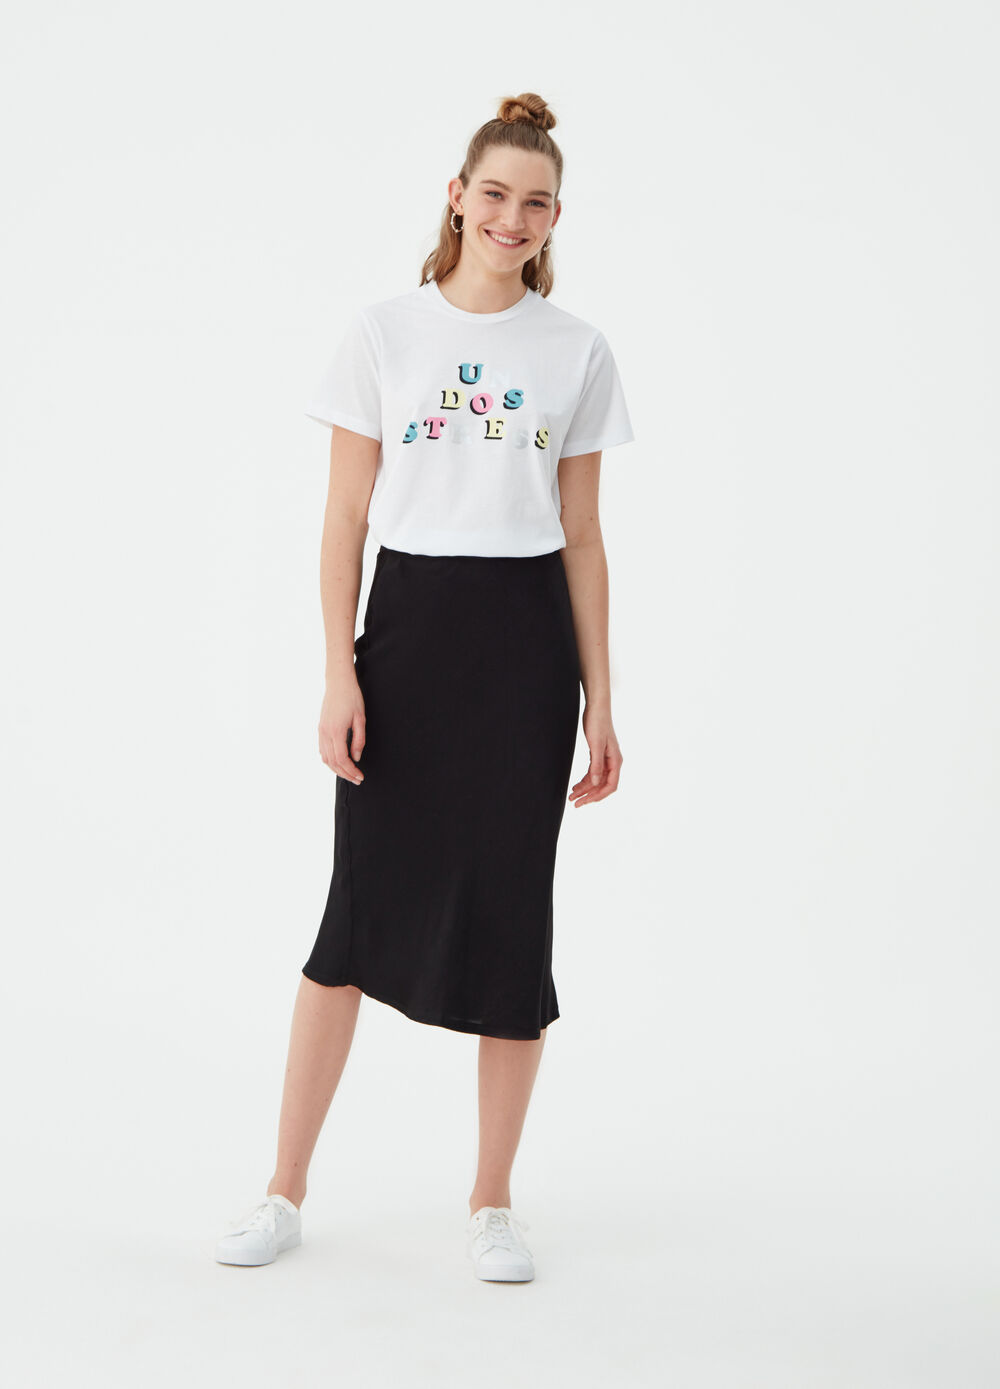 100% cotton basic T-shirt with print